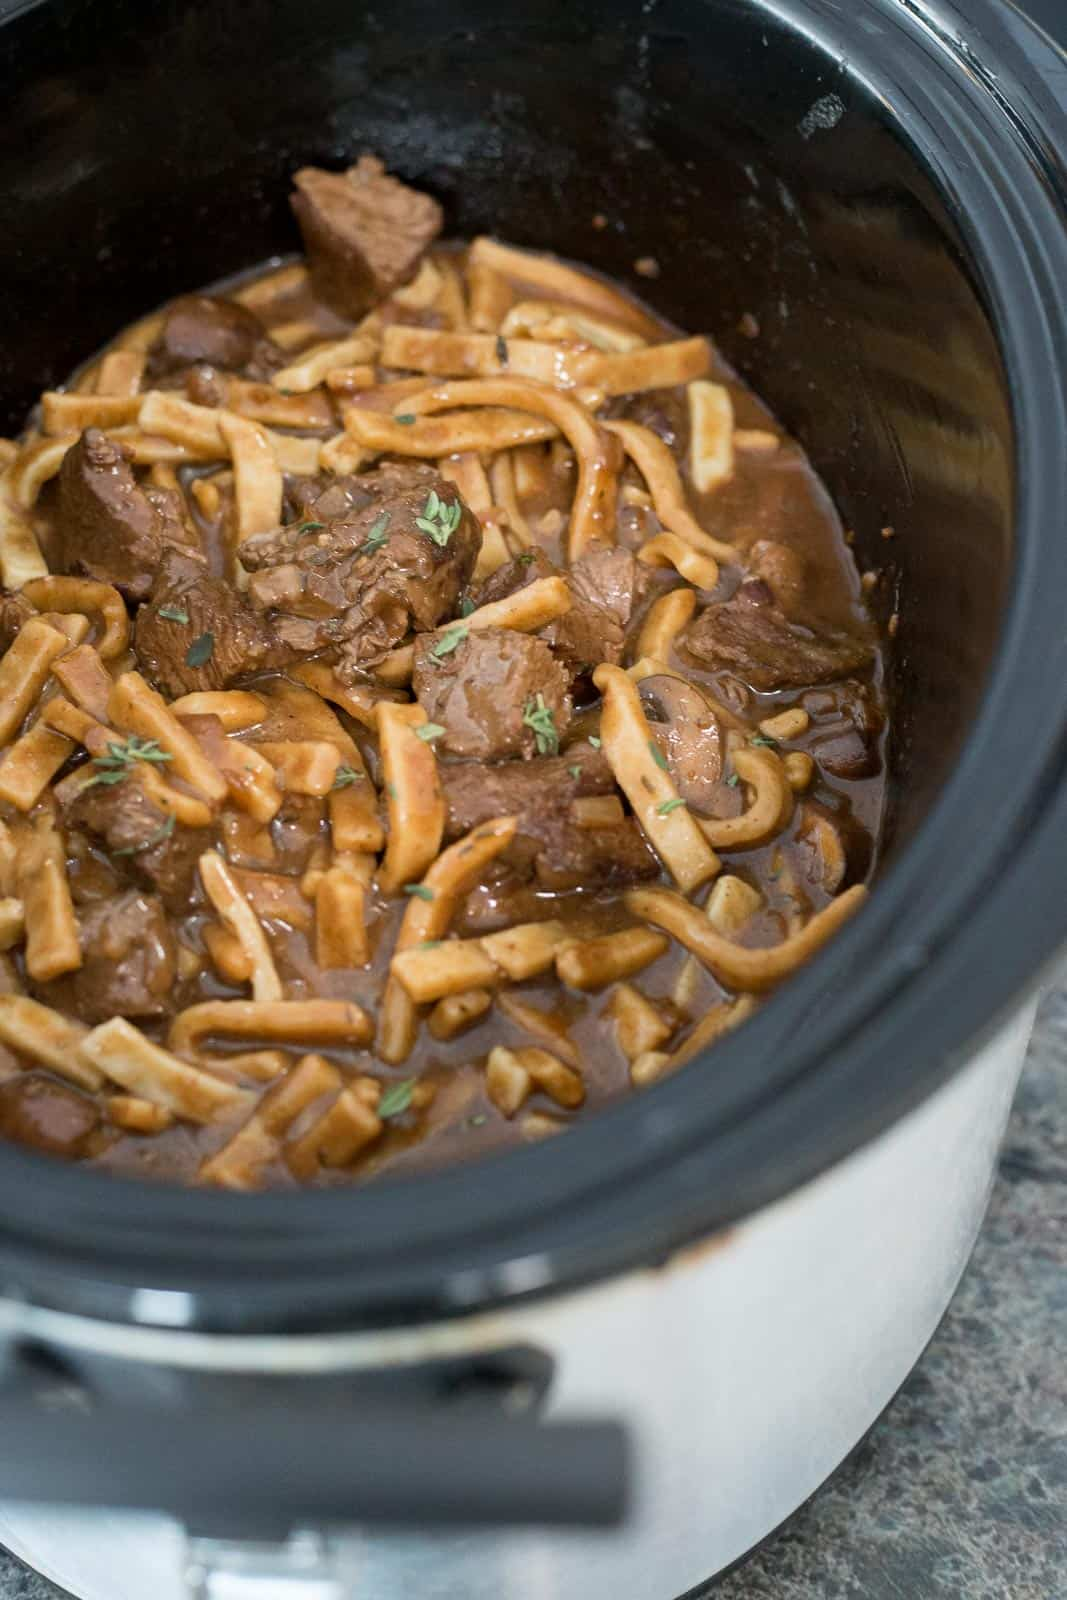 This slow cooker stroganoff is so simple and DELICIOUS, perfect for a chilly day. Just pop it in the crock pot and come home to a delicious family meal. #recipe #homemadegoodness #reames #ad #slowcooker #crockpot *My family loves Beef Stroganoff